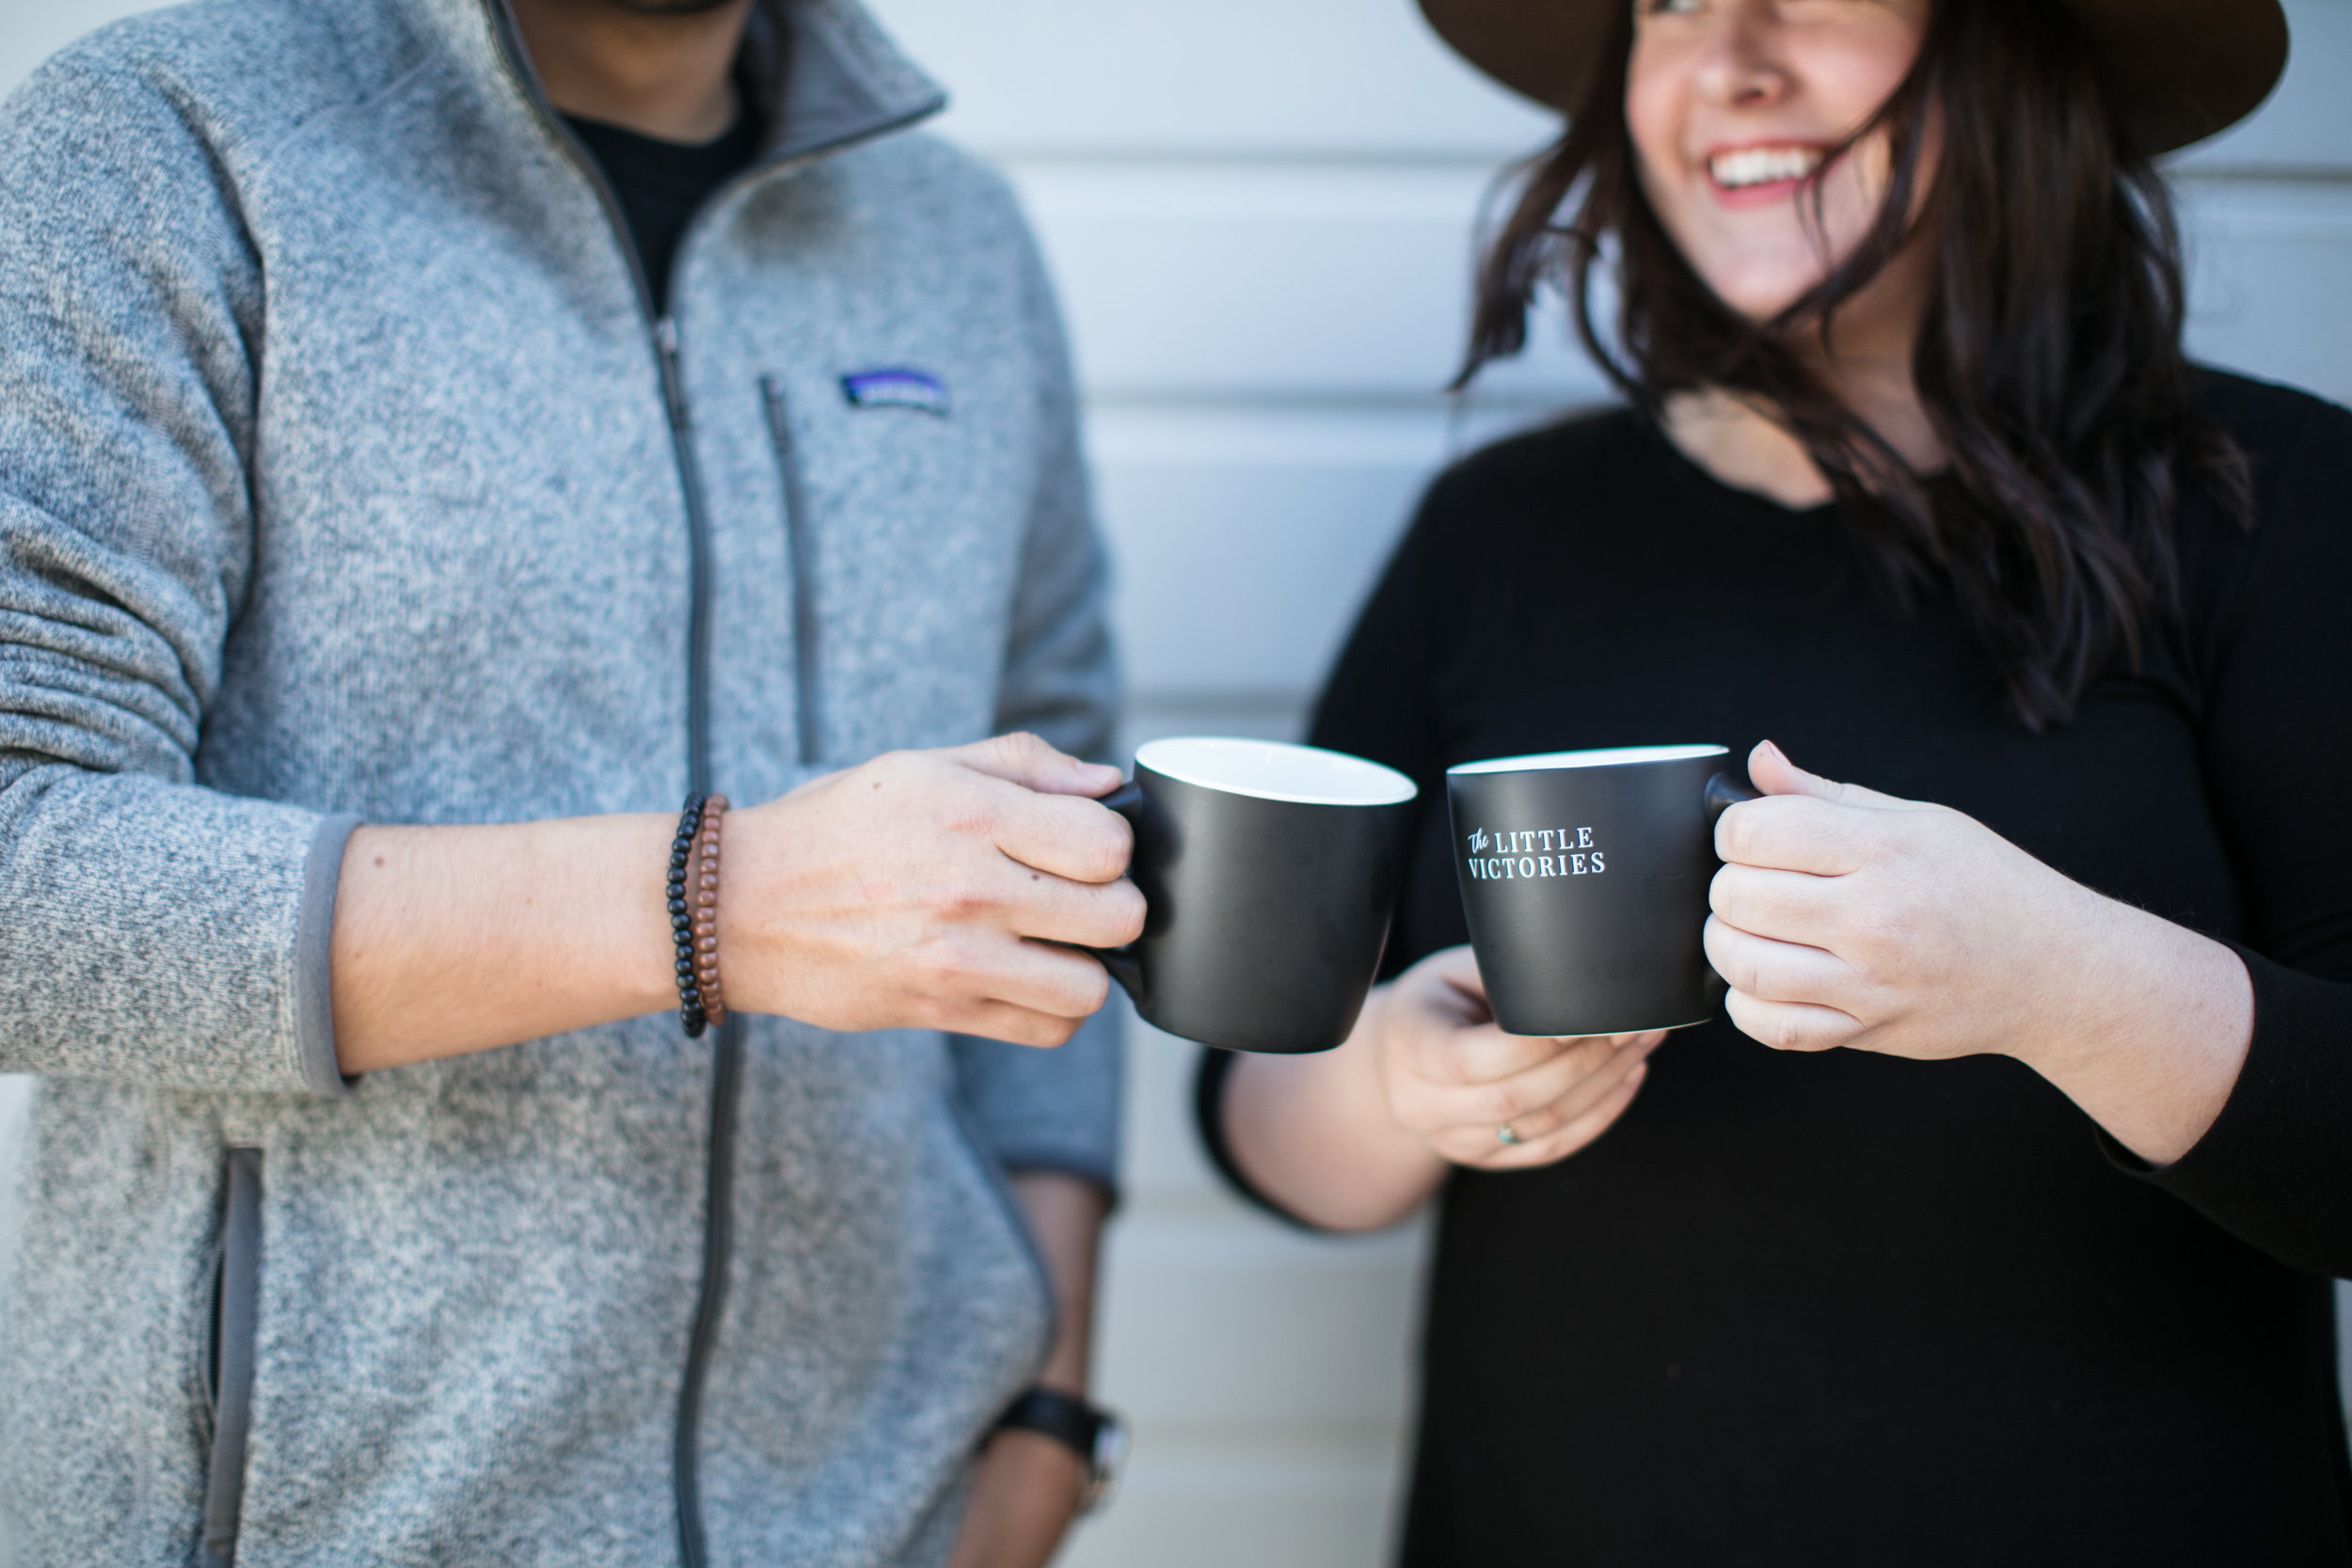 """This photo is directly from  Dubsado.com  (definitely not trying to claim it as my own) and it features their amazing """"The Little Victories"""" mug. I use mine all the time when I'm working on different client projects."""